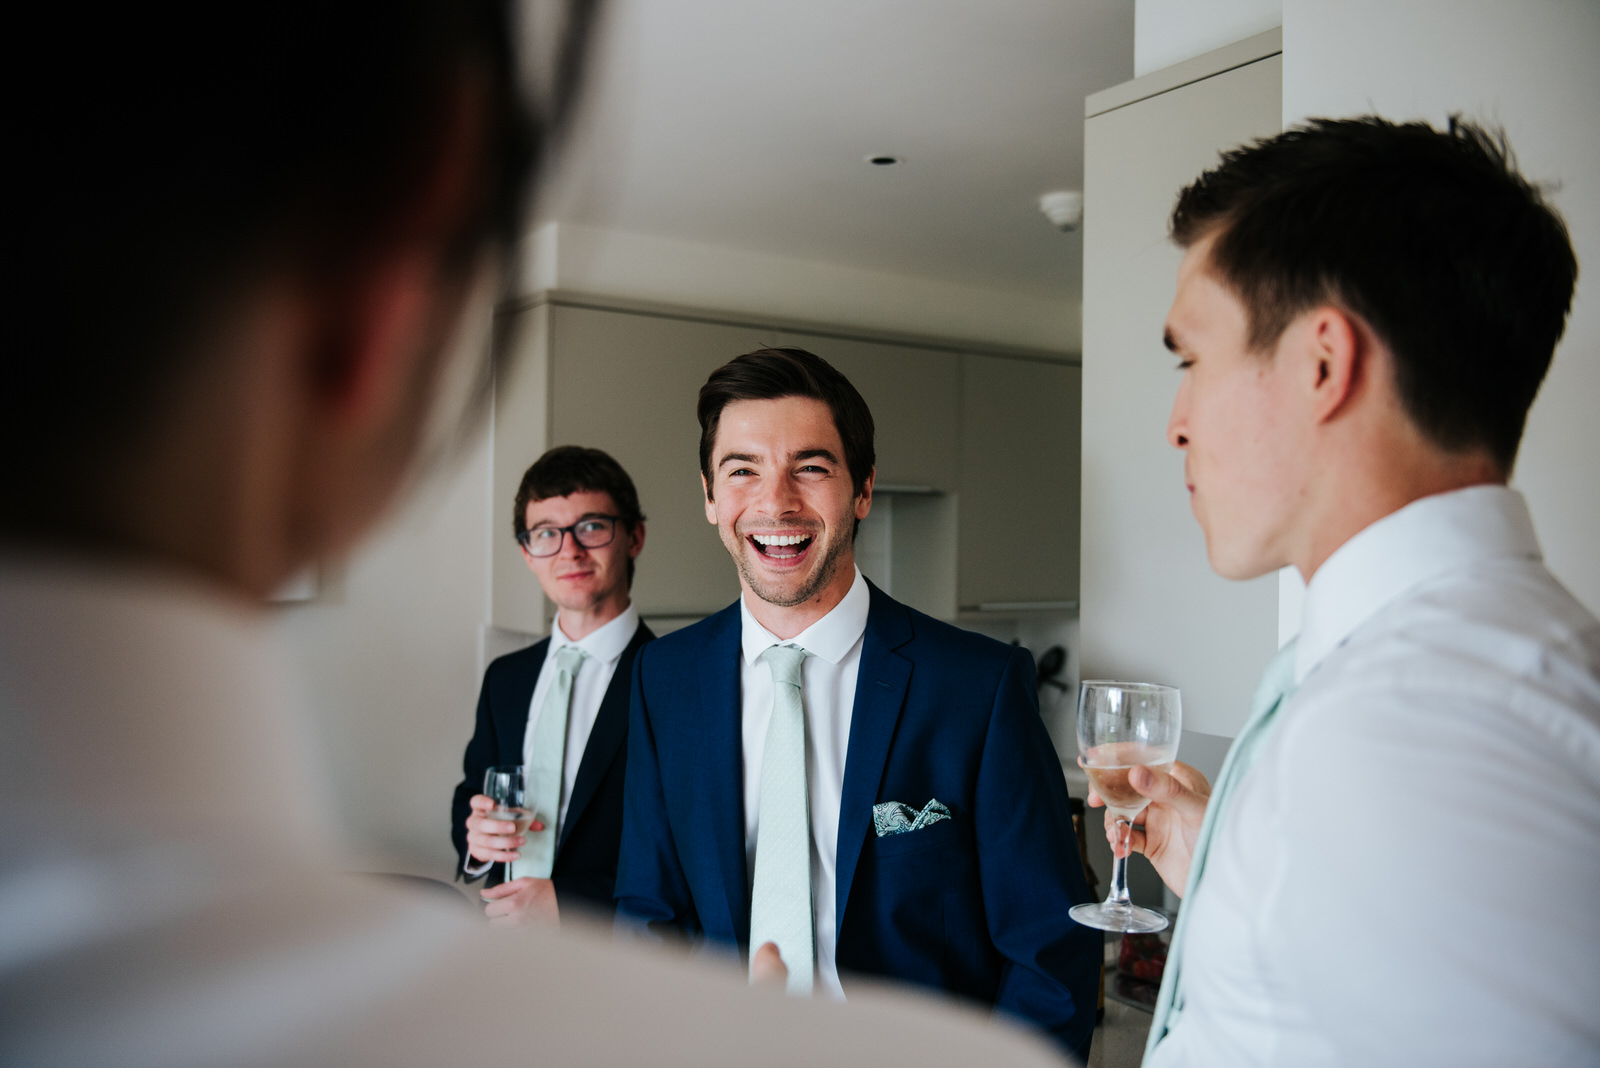 Groom and groomsmen laugh while sharing emotional advice before